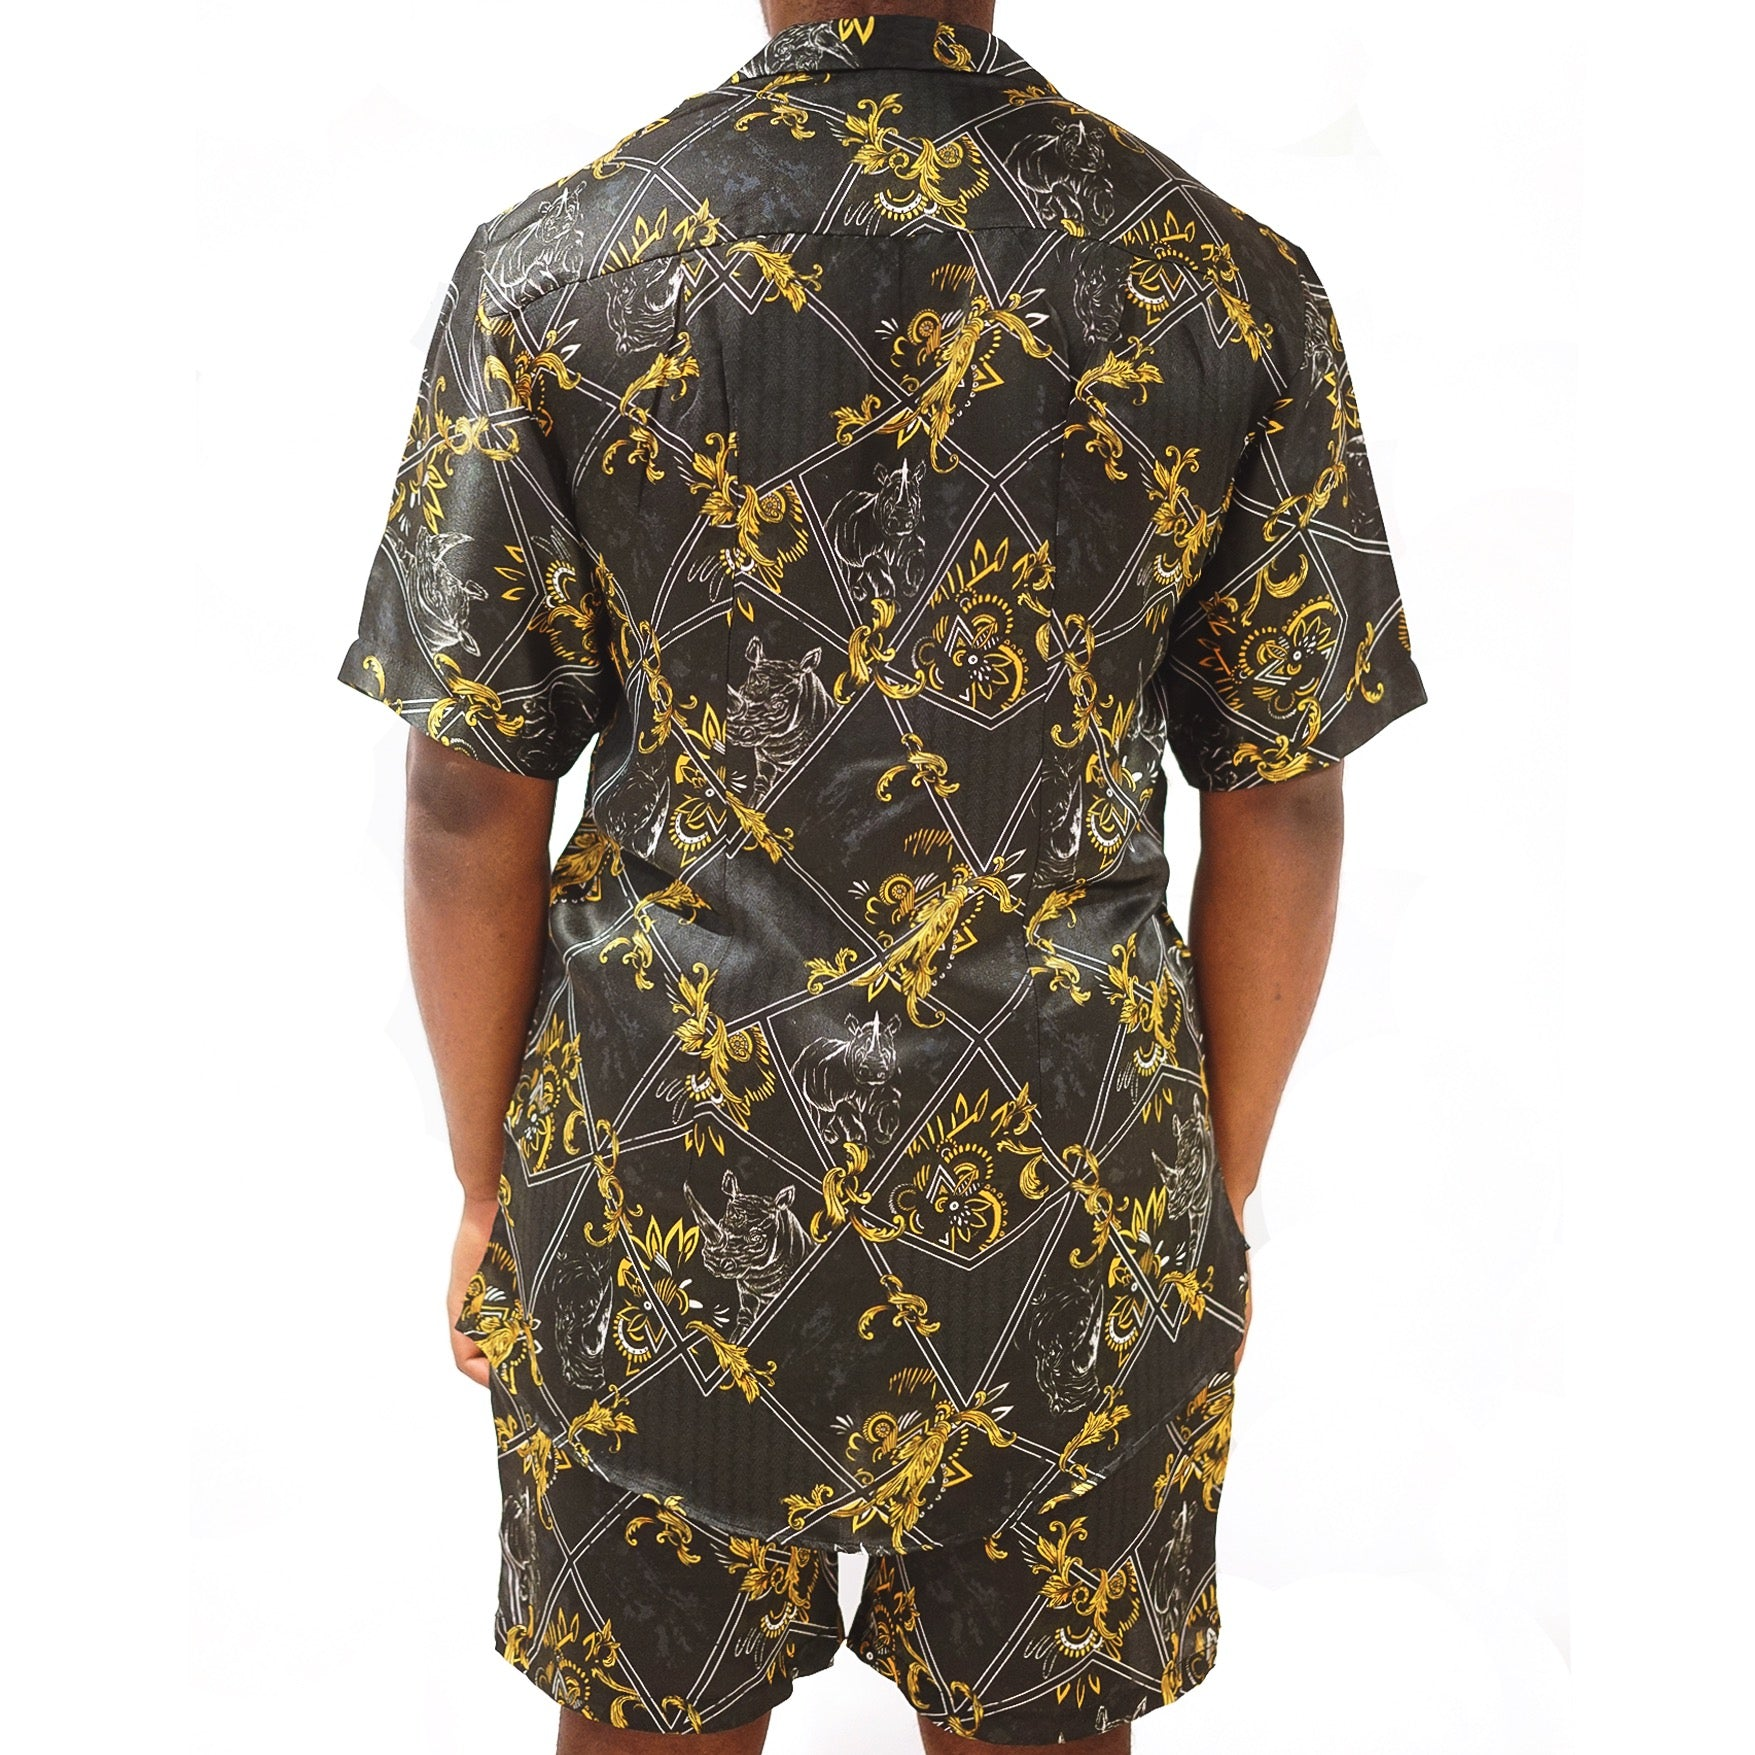 Men's Black Silk Shirt; Short Sleeve Printed Shirt